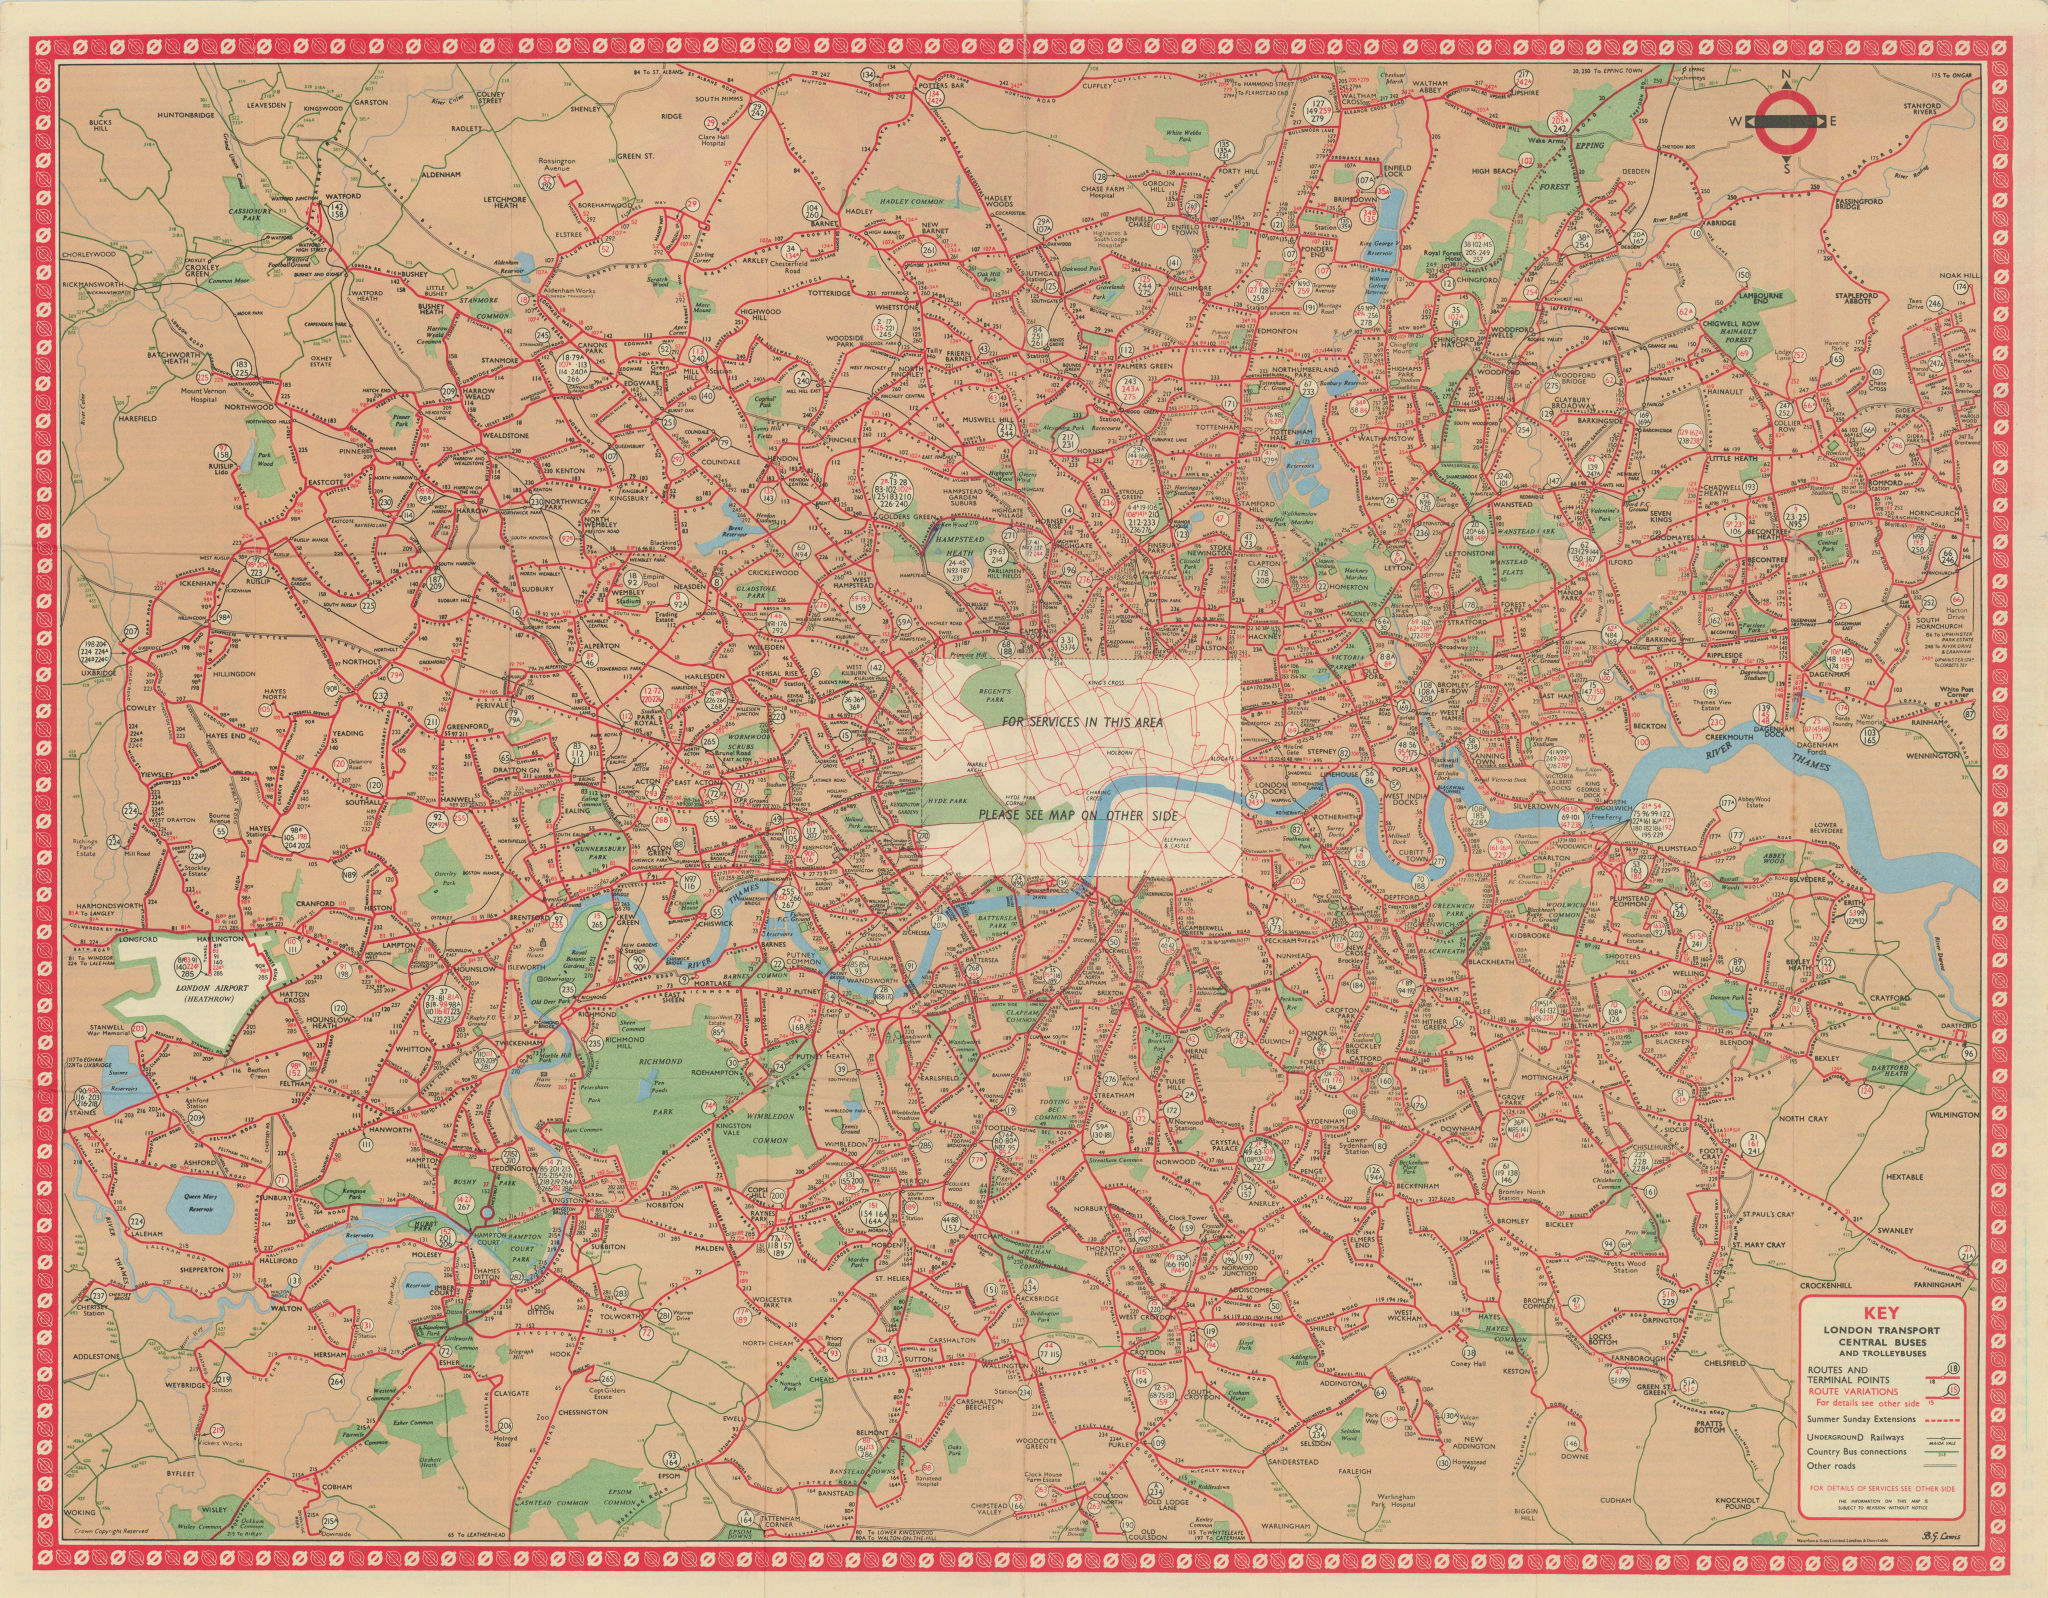 London Transport Central Buses map and list of routes. LEWIS #2 1962 old